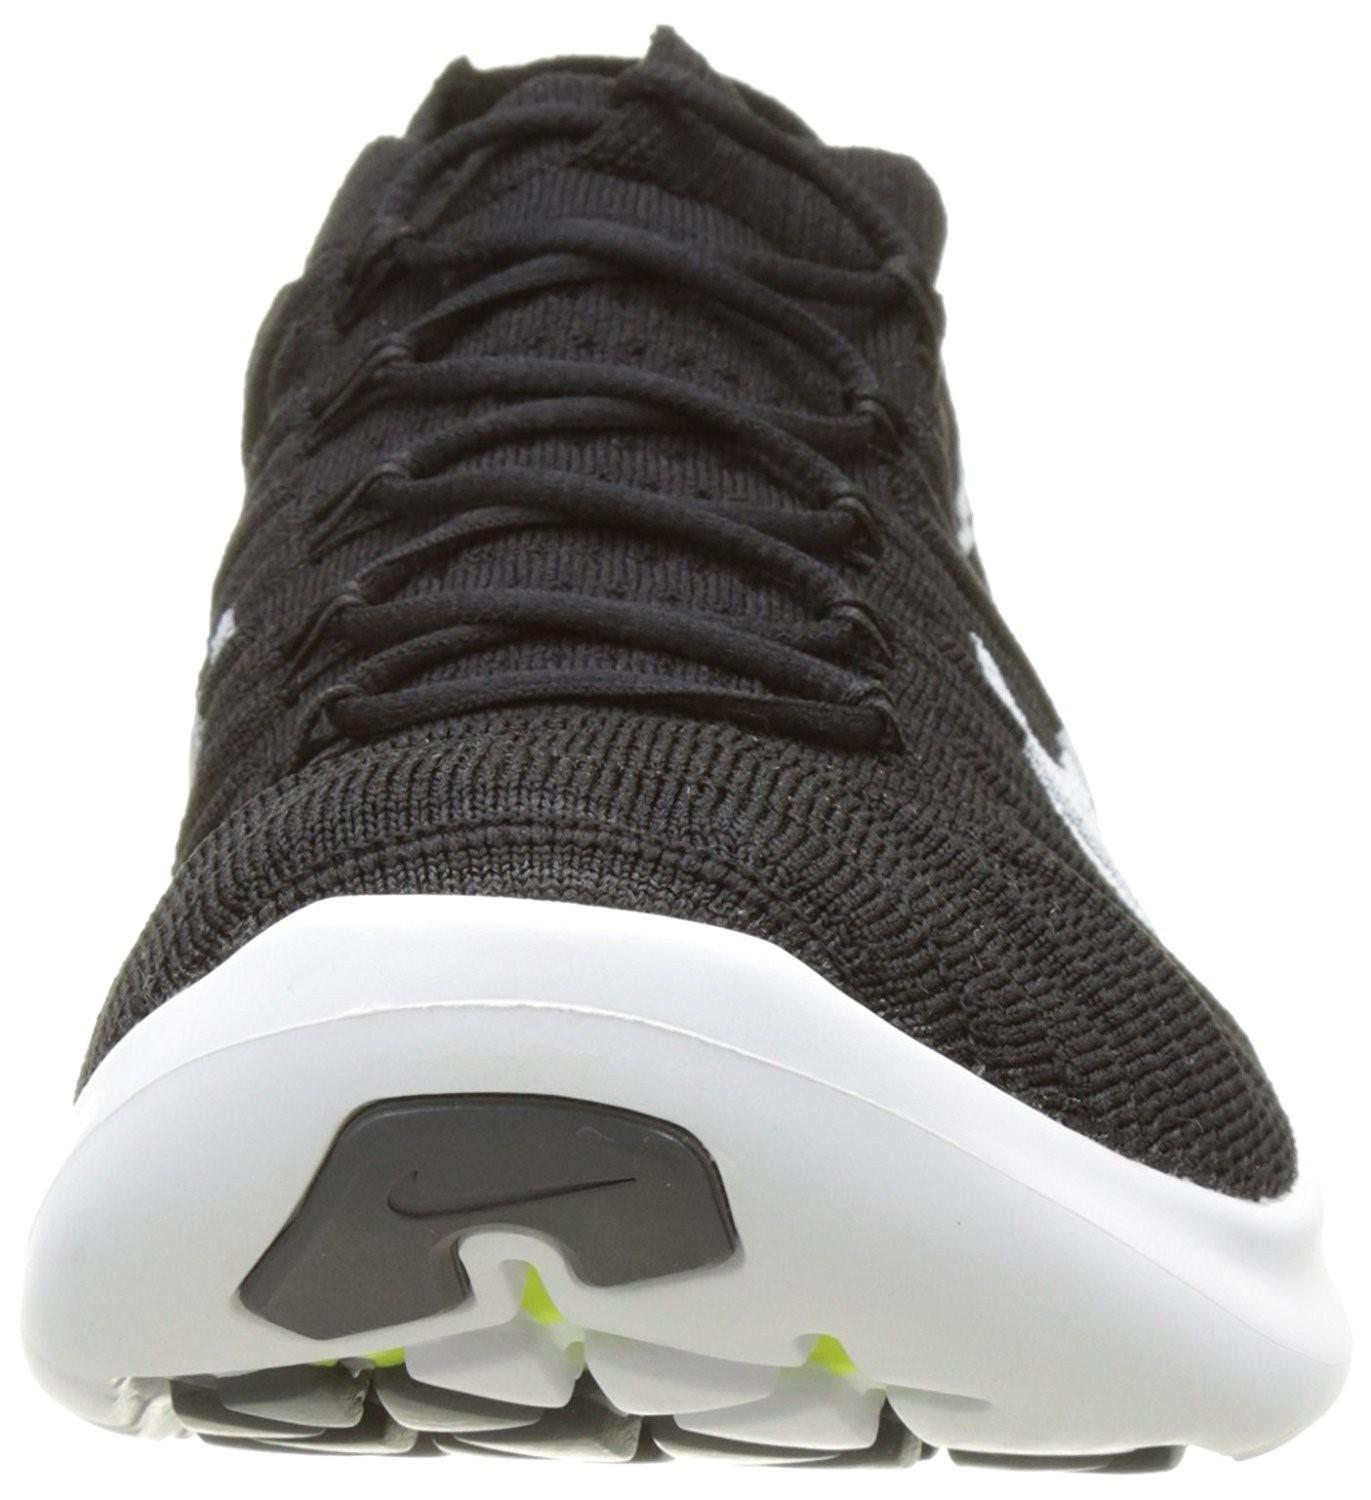 634a5491fd7 Lyst - Nike Free Rn Motion Flyknit Running Shoes-black white-volt-12 ...